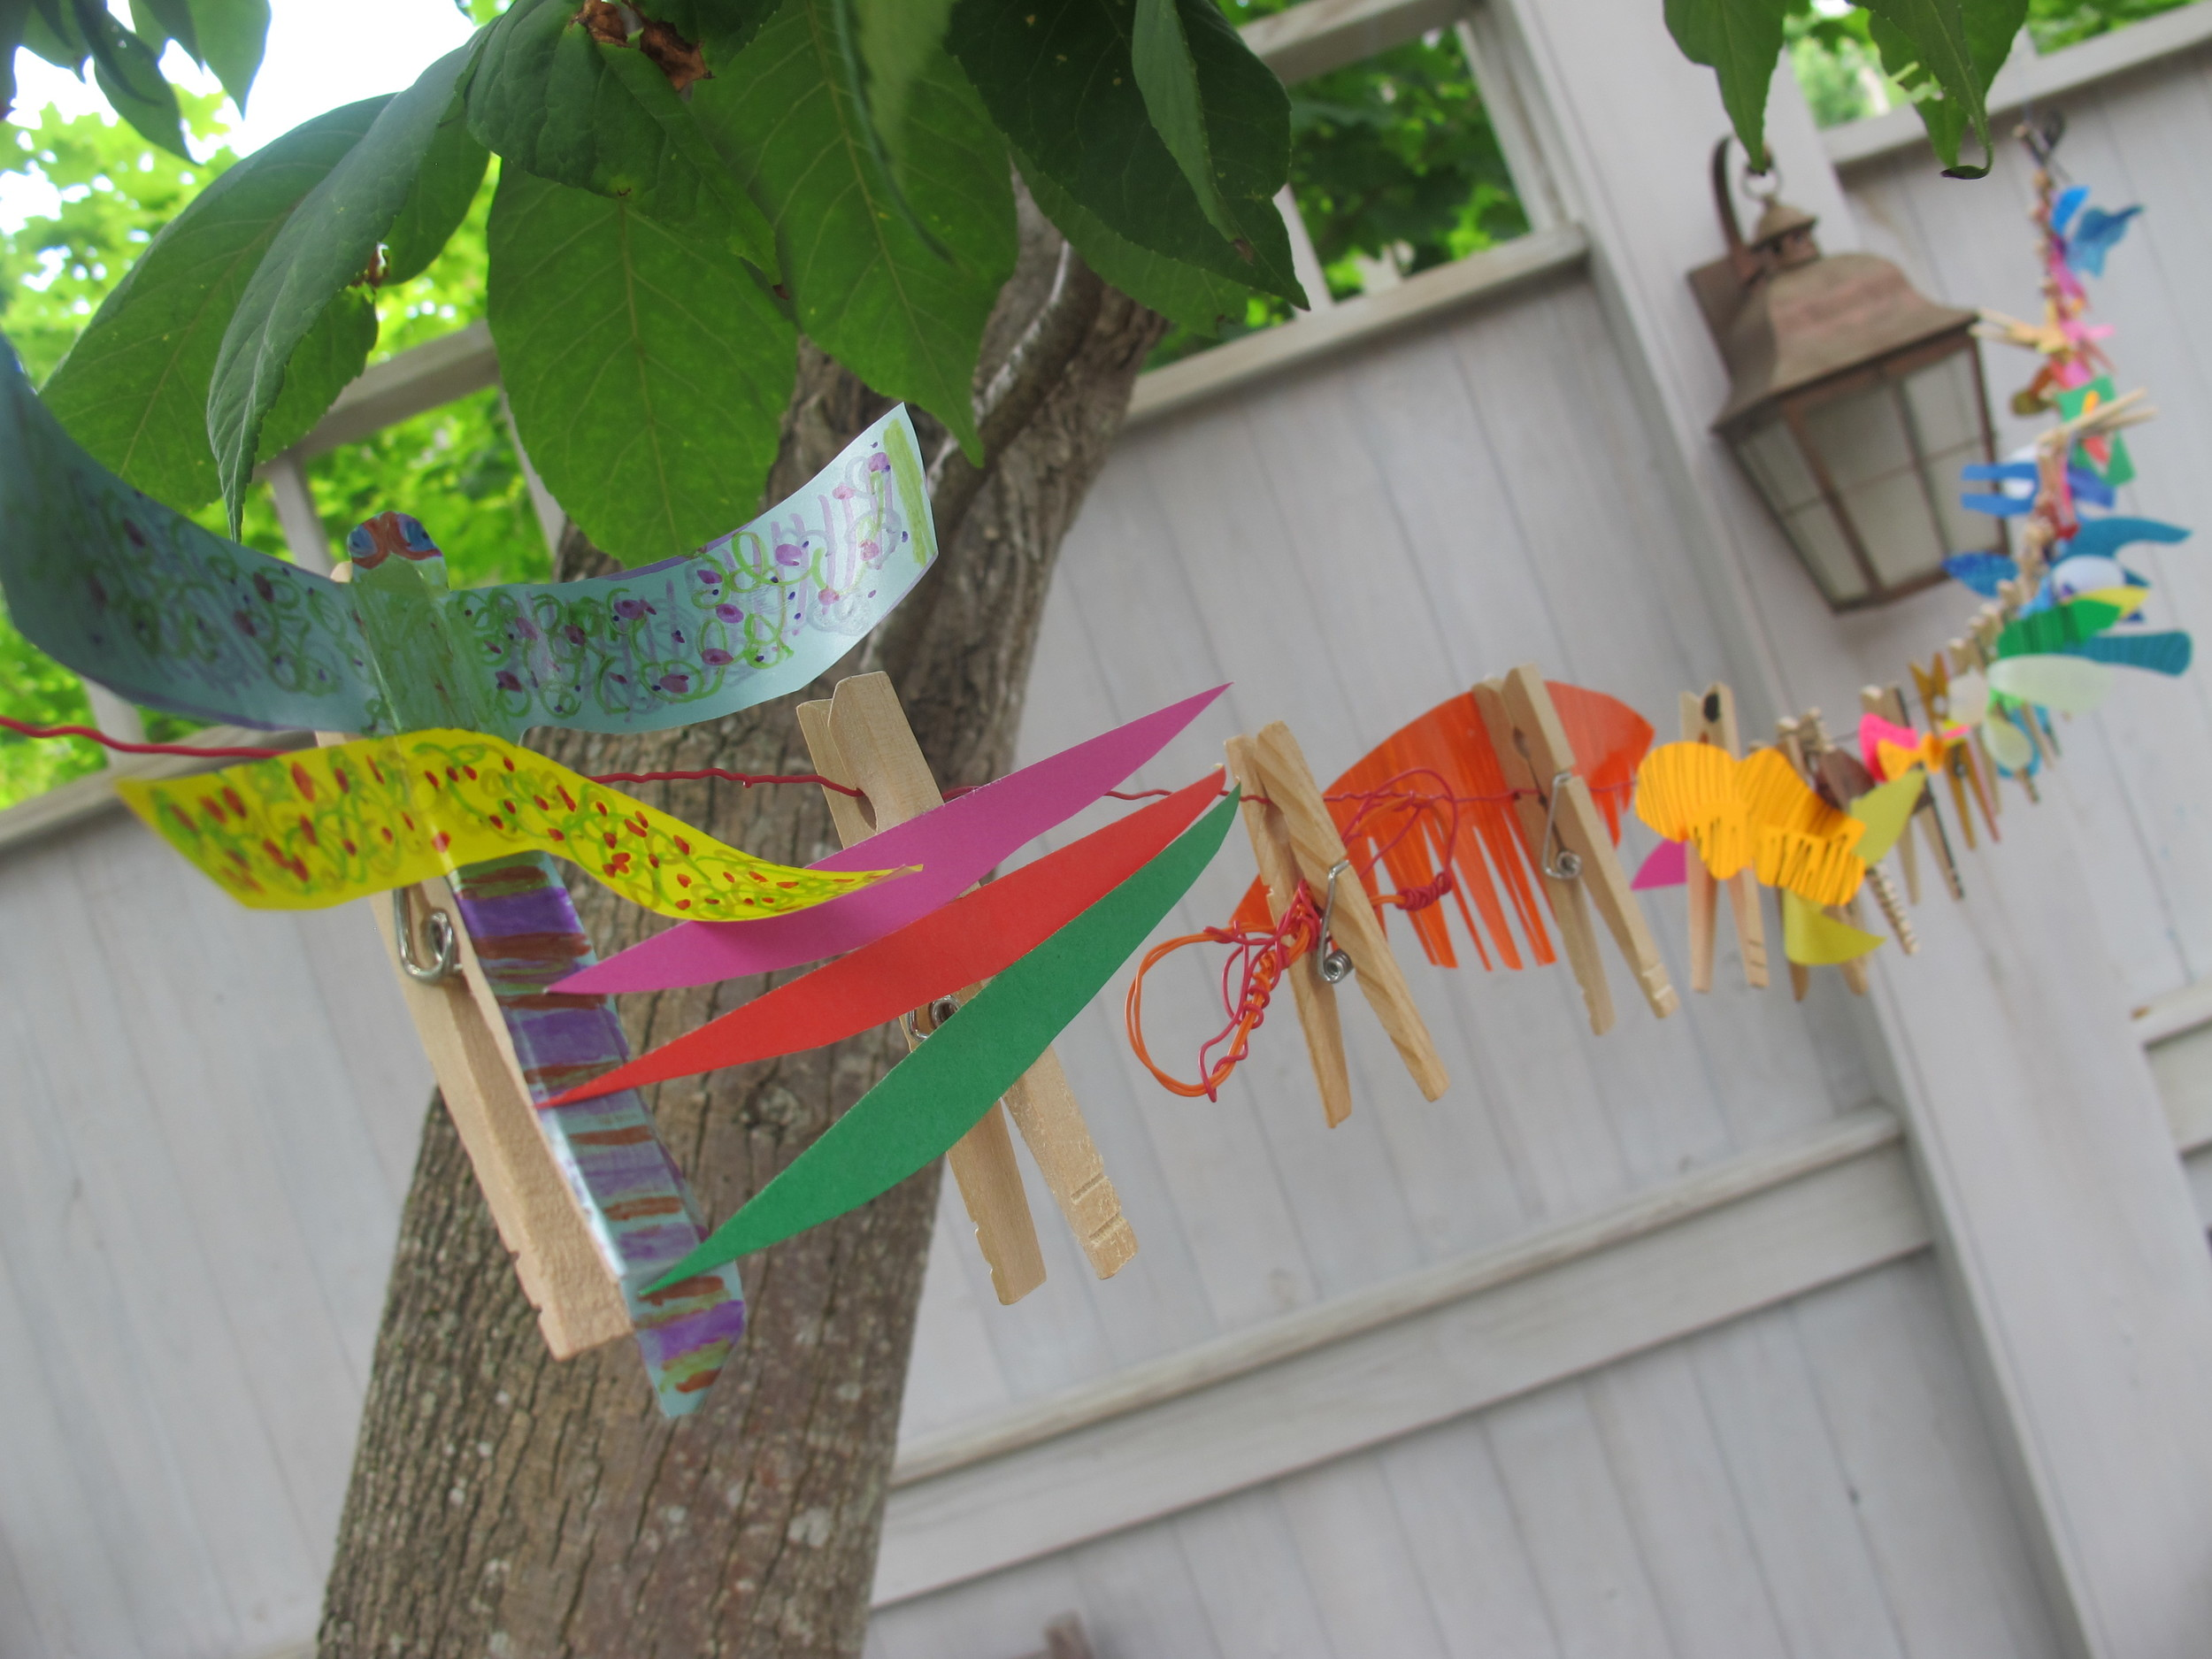 We held a dragonfly-themed science-art-and-dance event on the Notebook deck with top Broadway dancers Elizabeth Parkinson and Scott Wise. It was a blast. Here are some of the clothespin dragonflies people made. The idea for these pins came from Elizabeth and Scott's son, James, age 7.